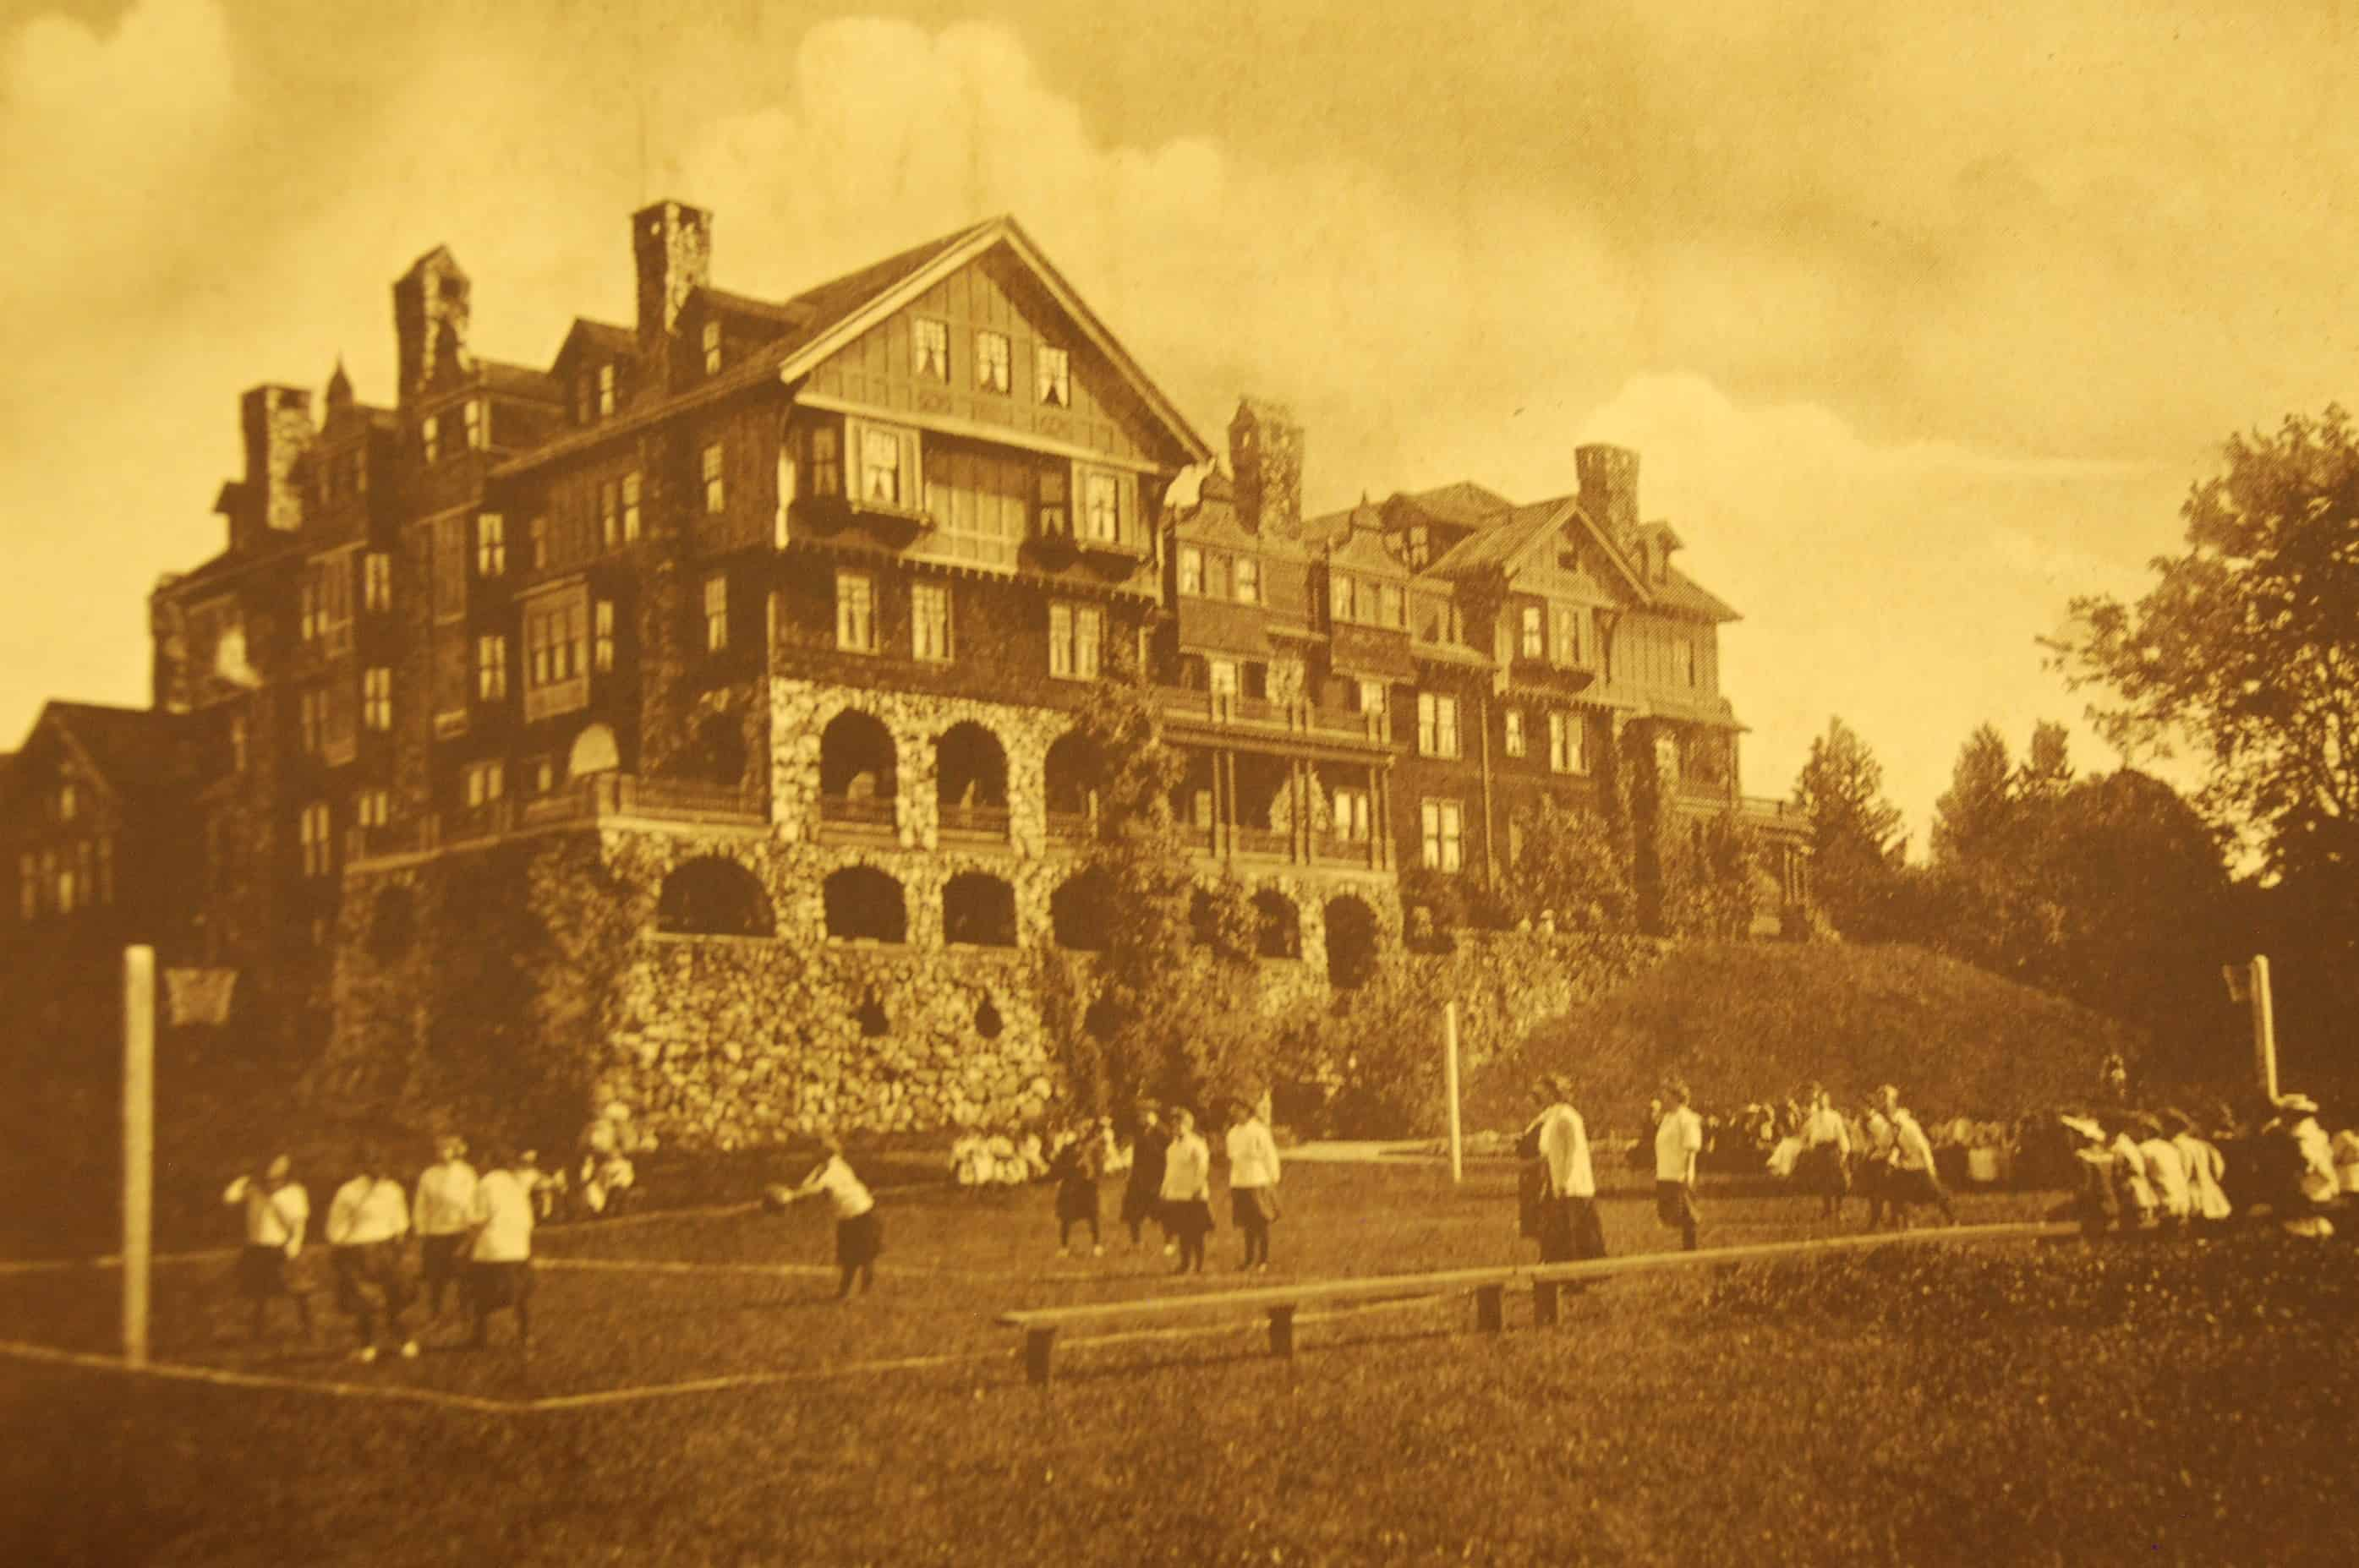 2. Halcyon Hall Early 20th Century